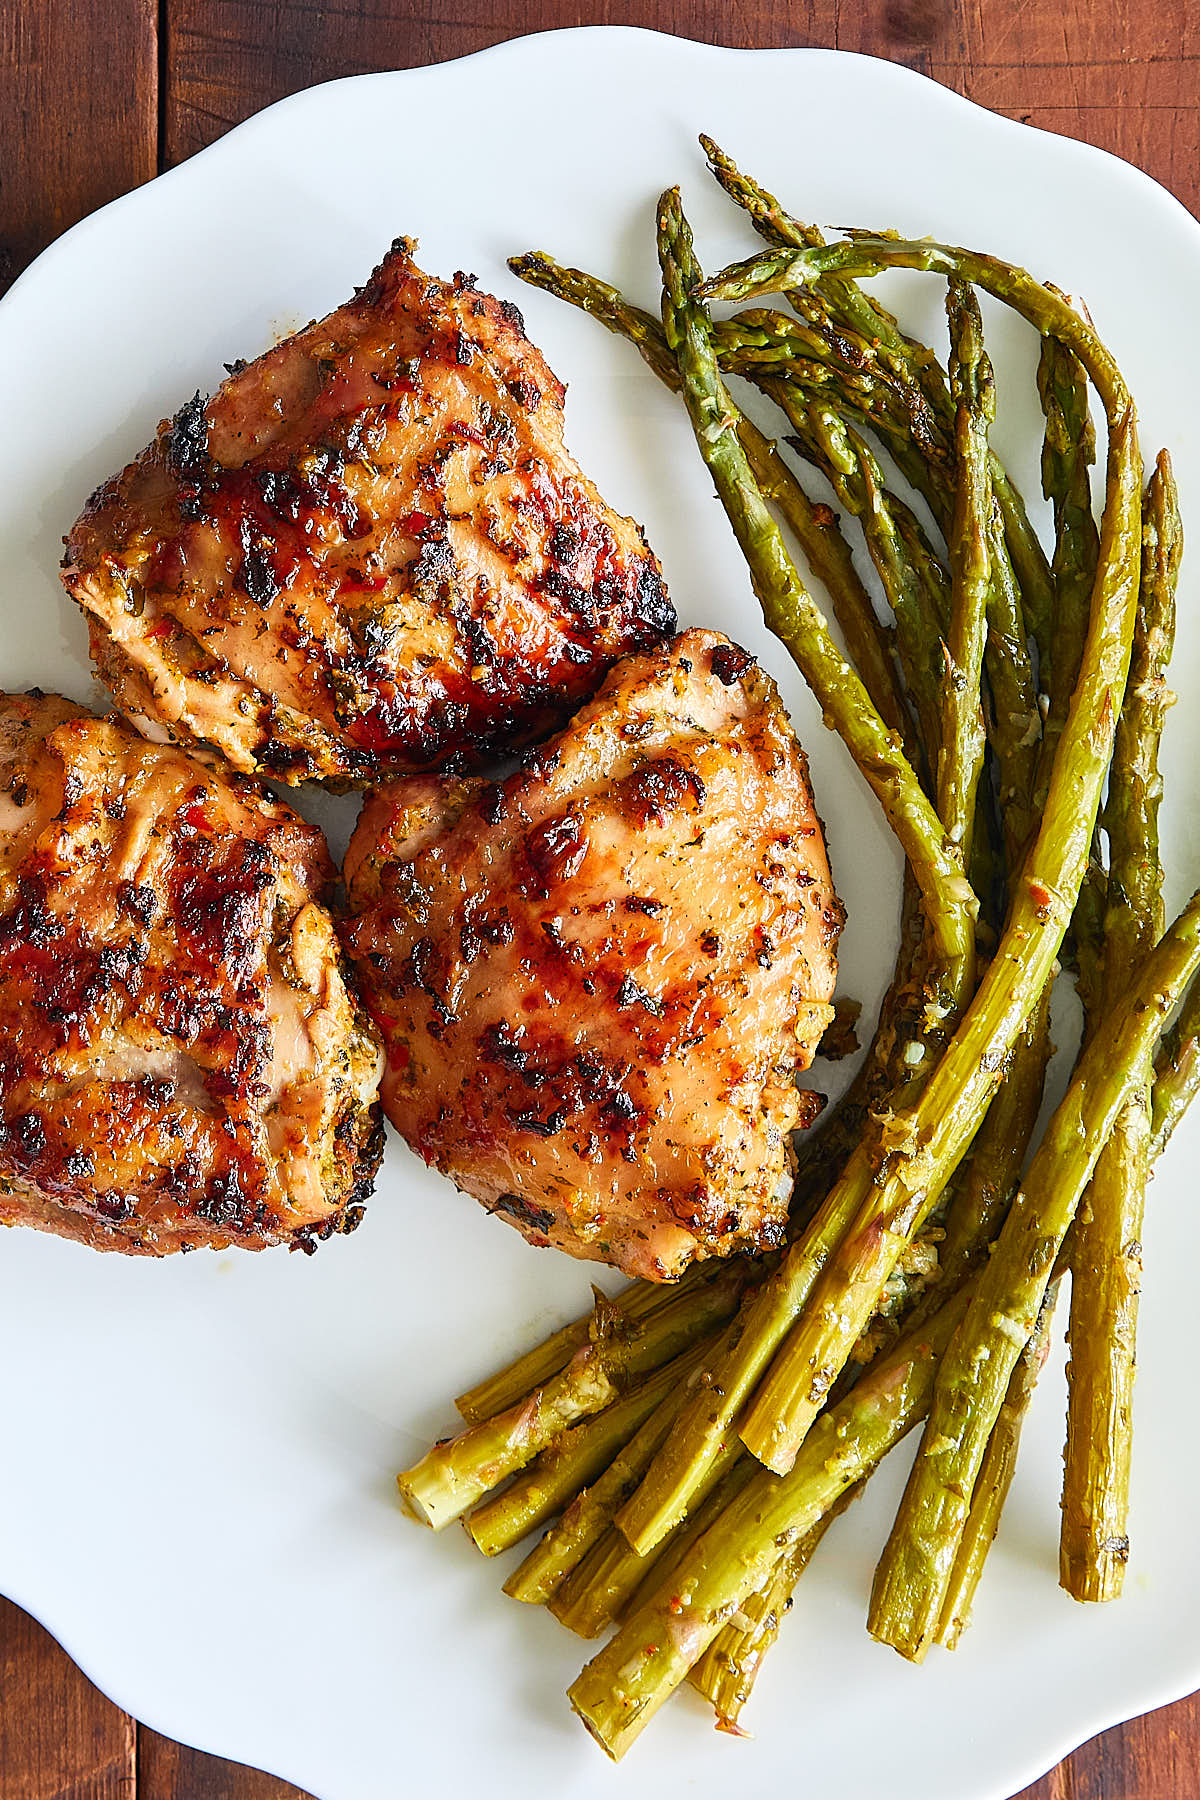 Grilled chicken thighs on a plate with asparagus.